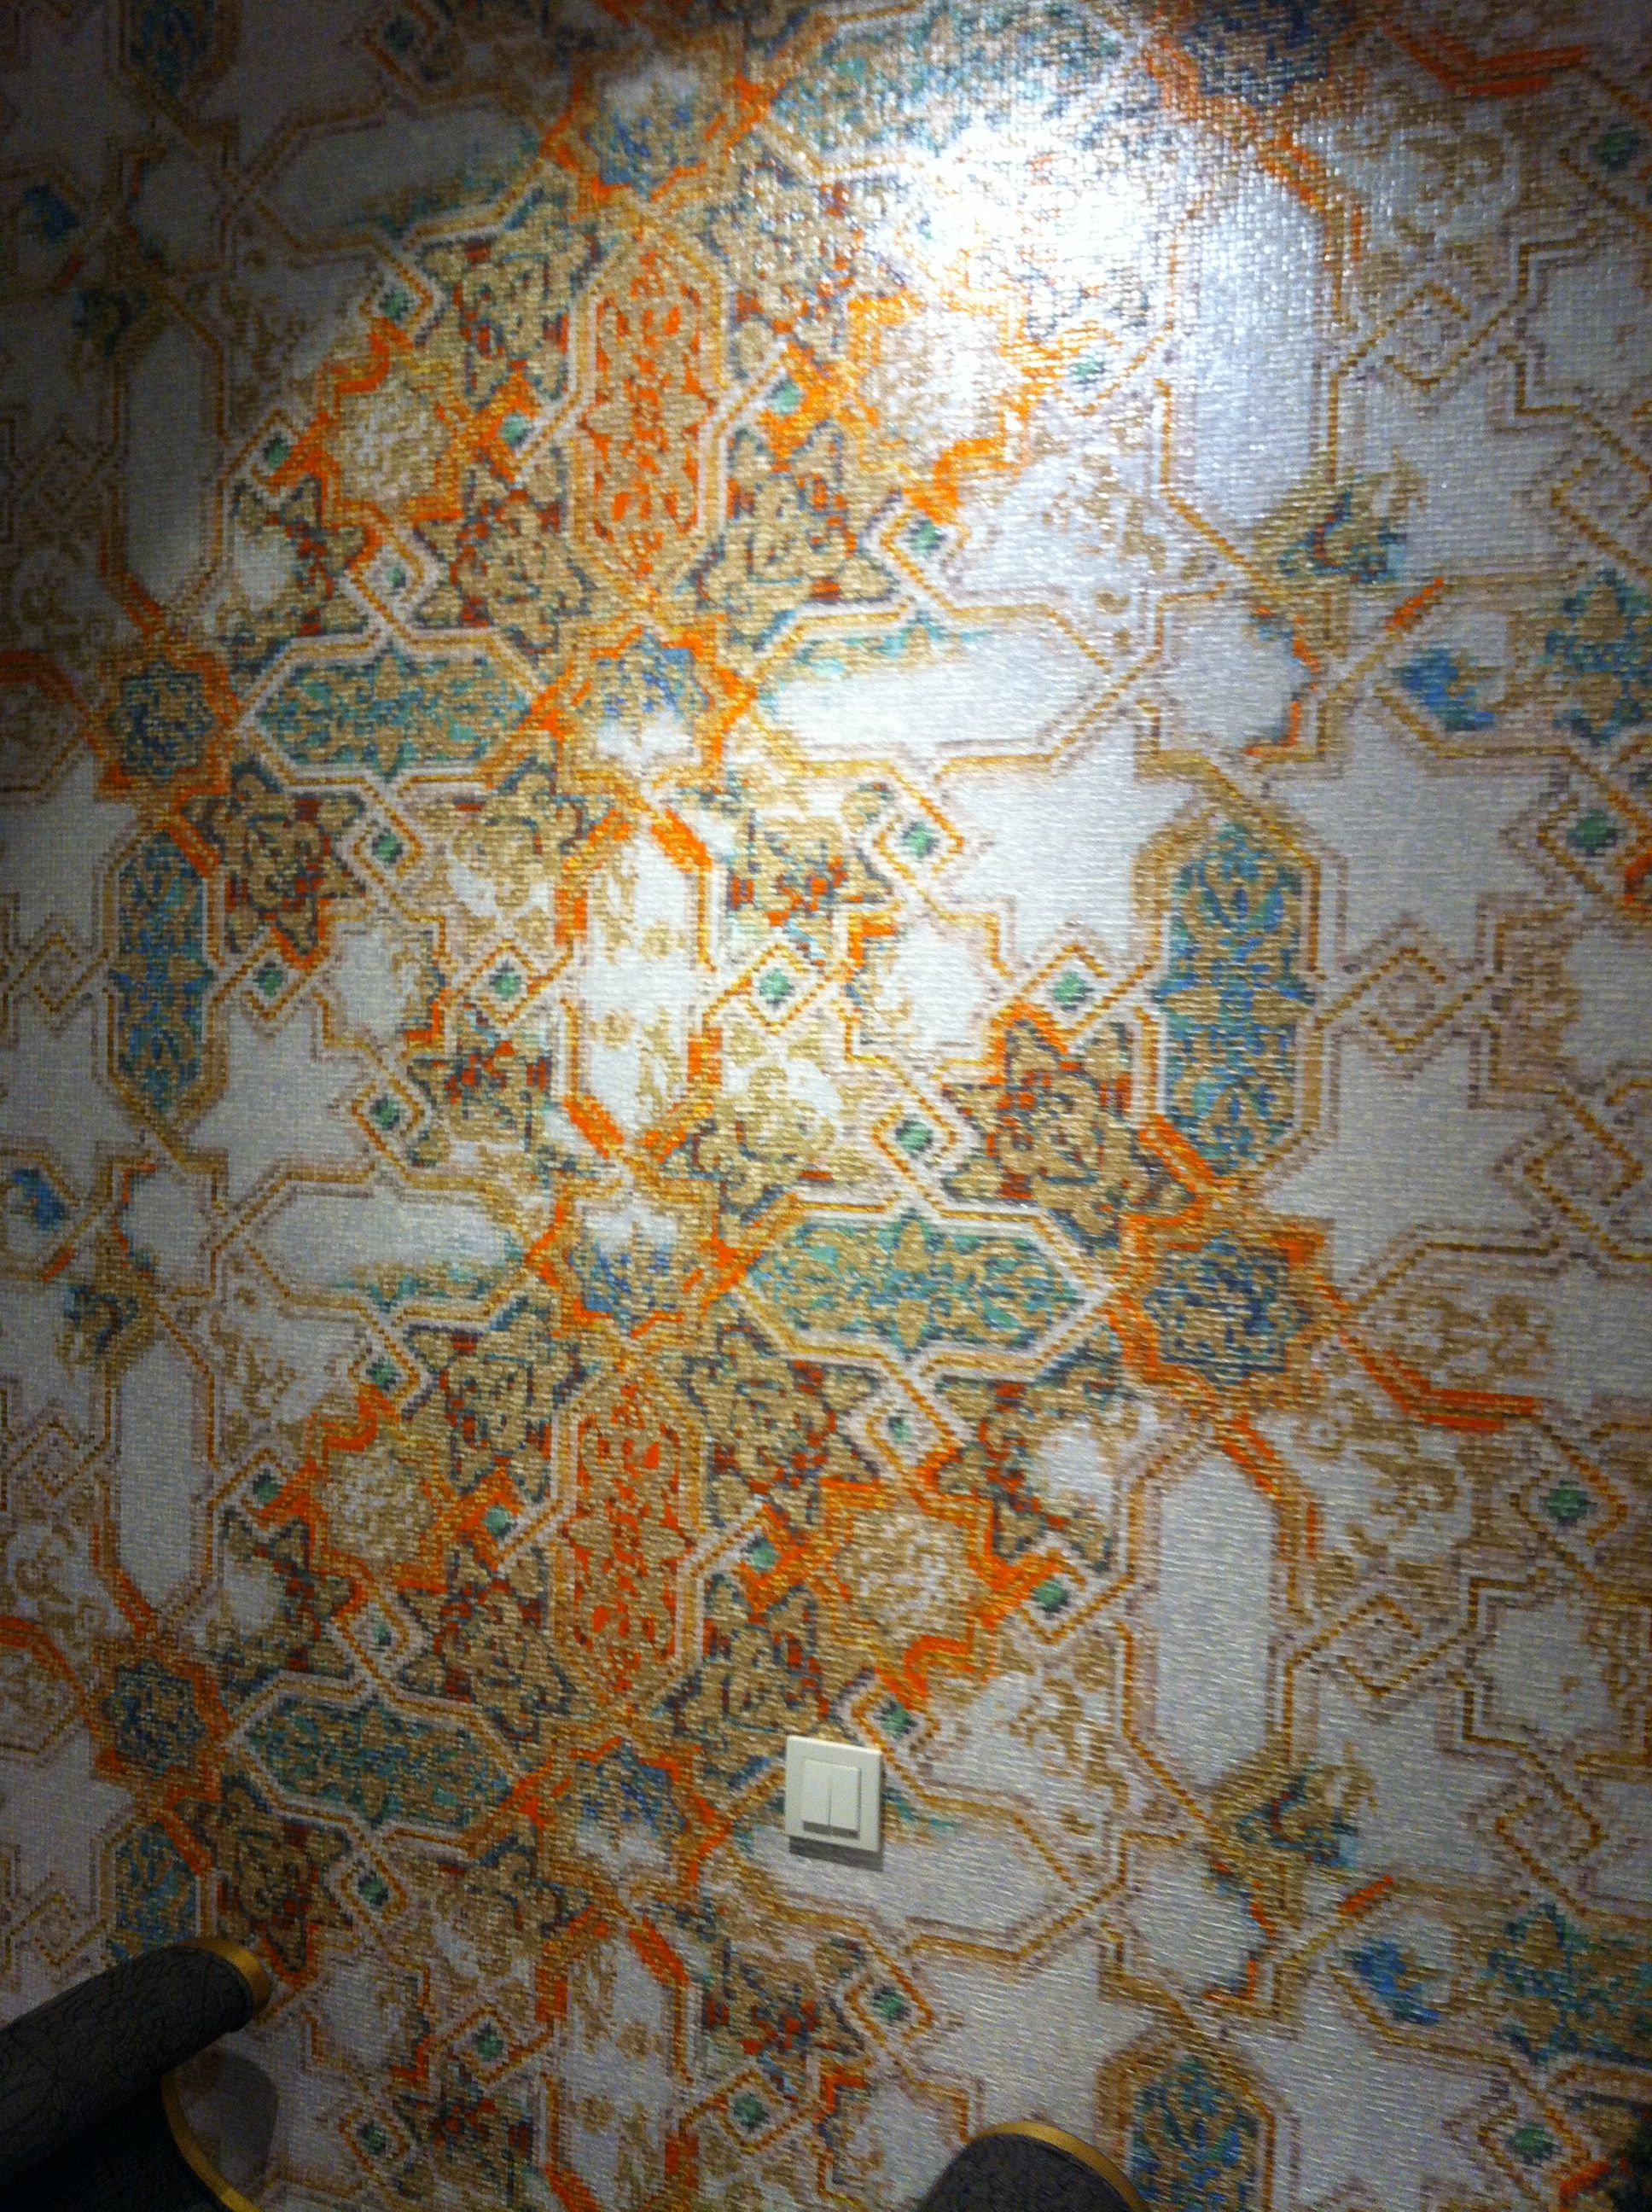 Morrocan Style, Old, Vintage Looking, Wallpaper